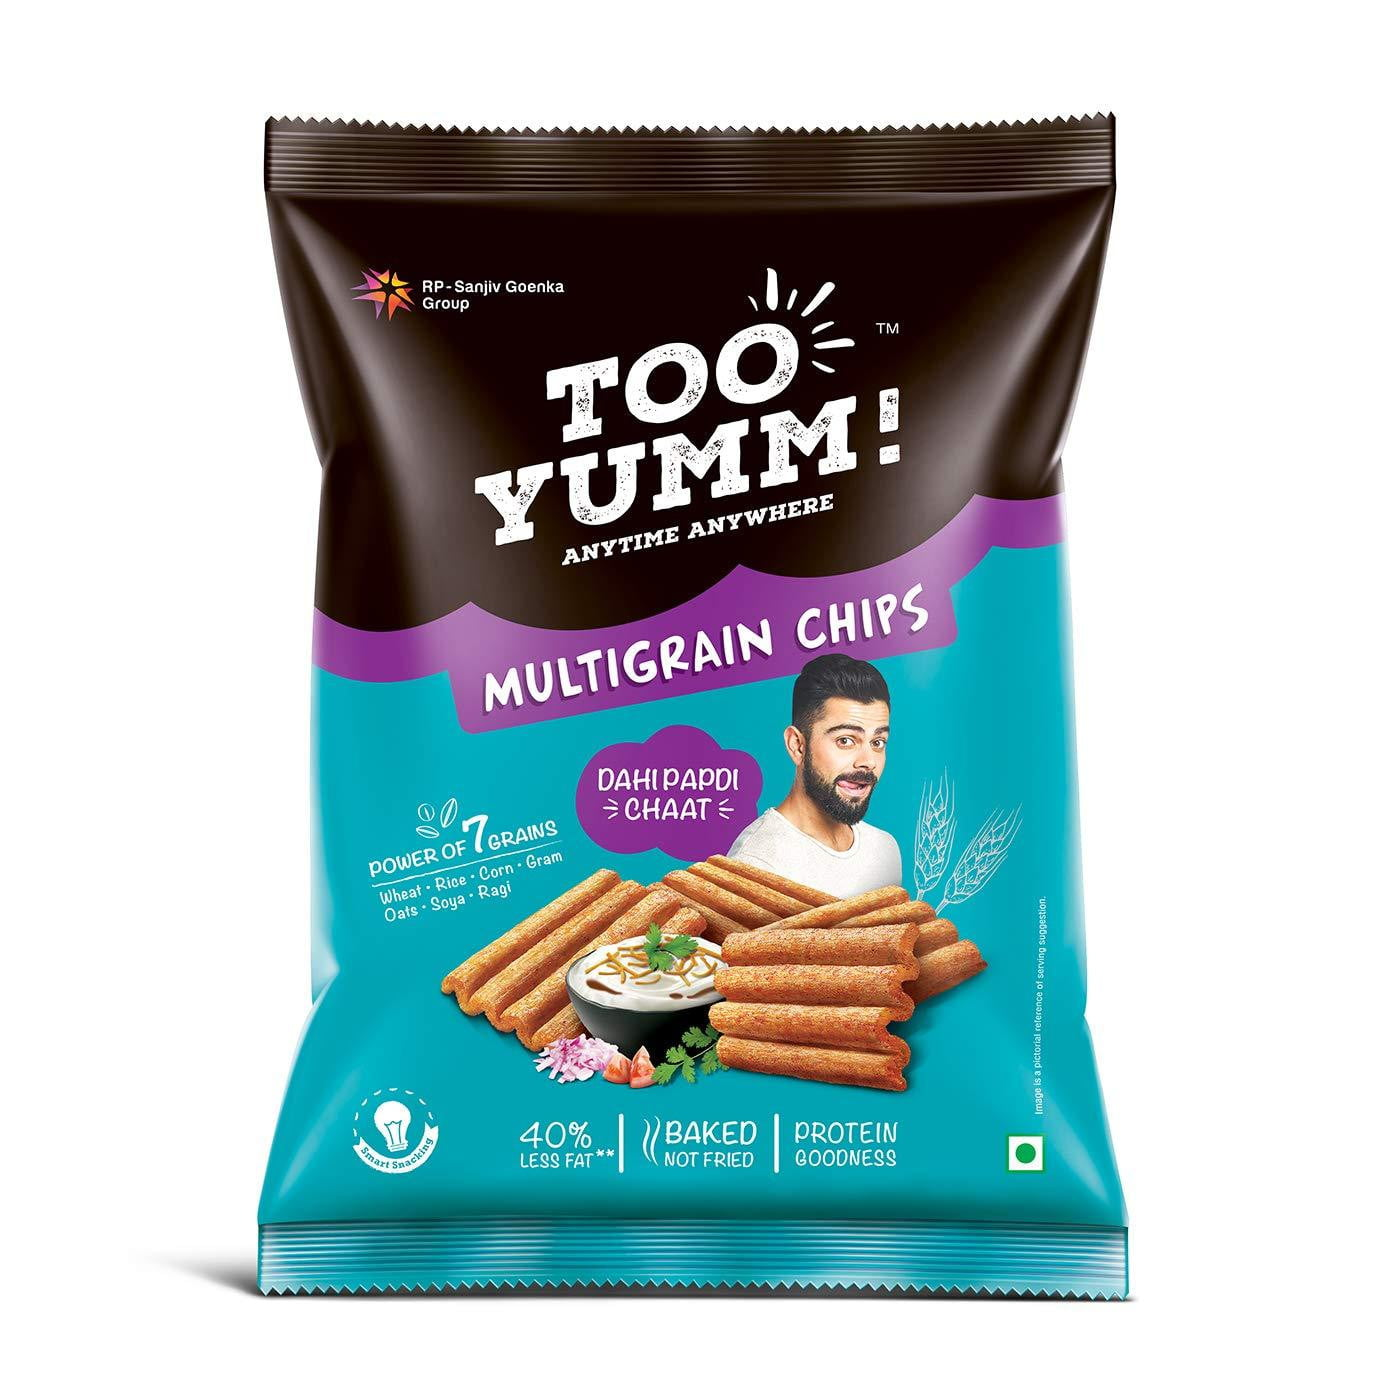 Too Yumm! Multigrain Chips Dahi Papdi Chaat (6x28 g Multipack) - Buythevalue.in